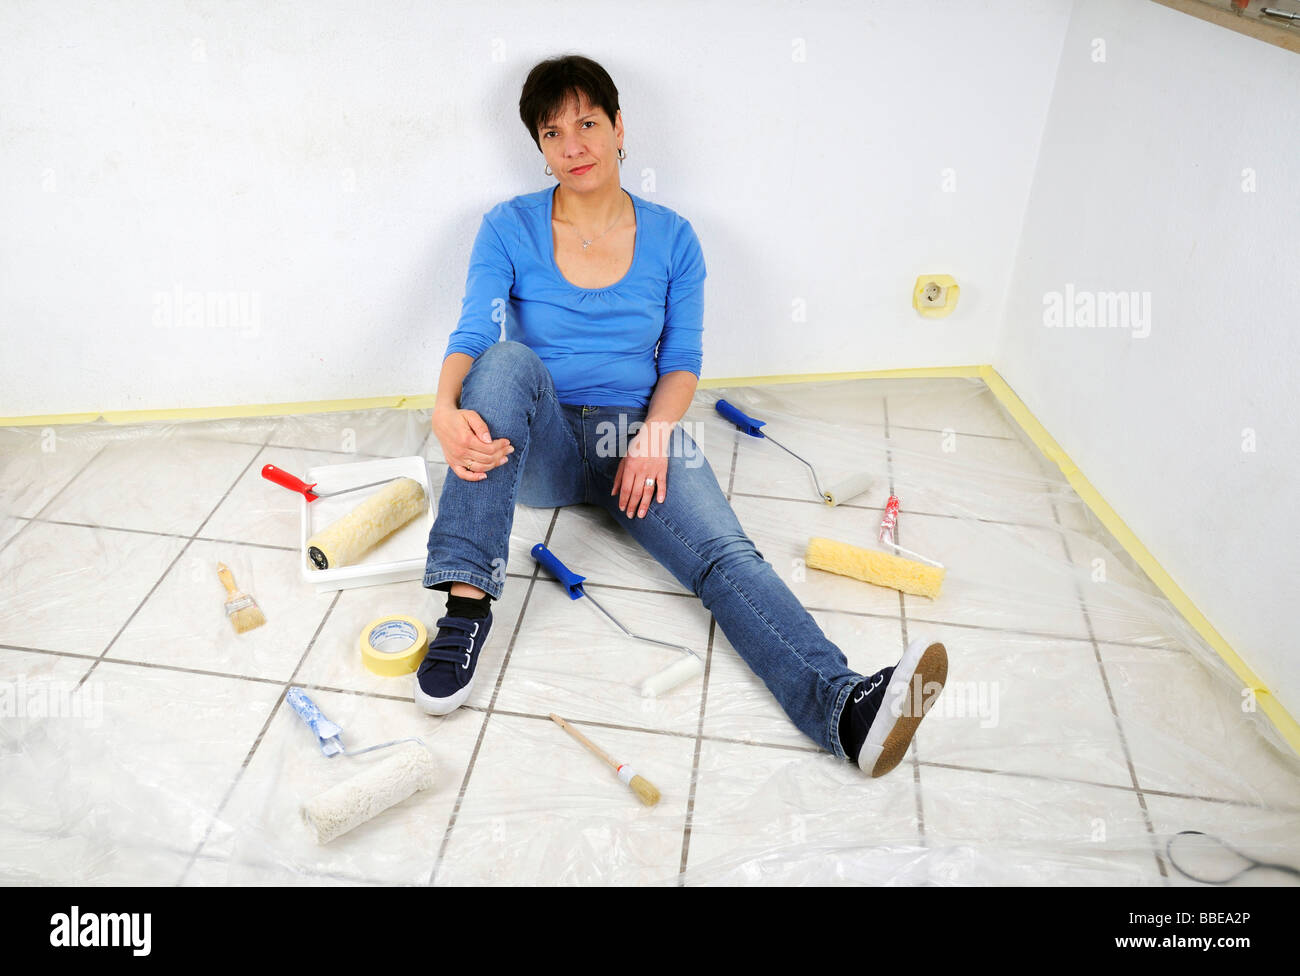 Paintwork, annoyed woman in the midst of painting utensils - Stock Image